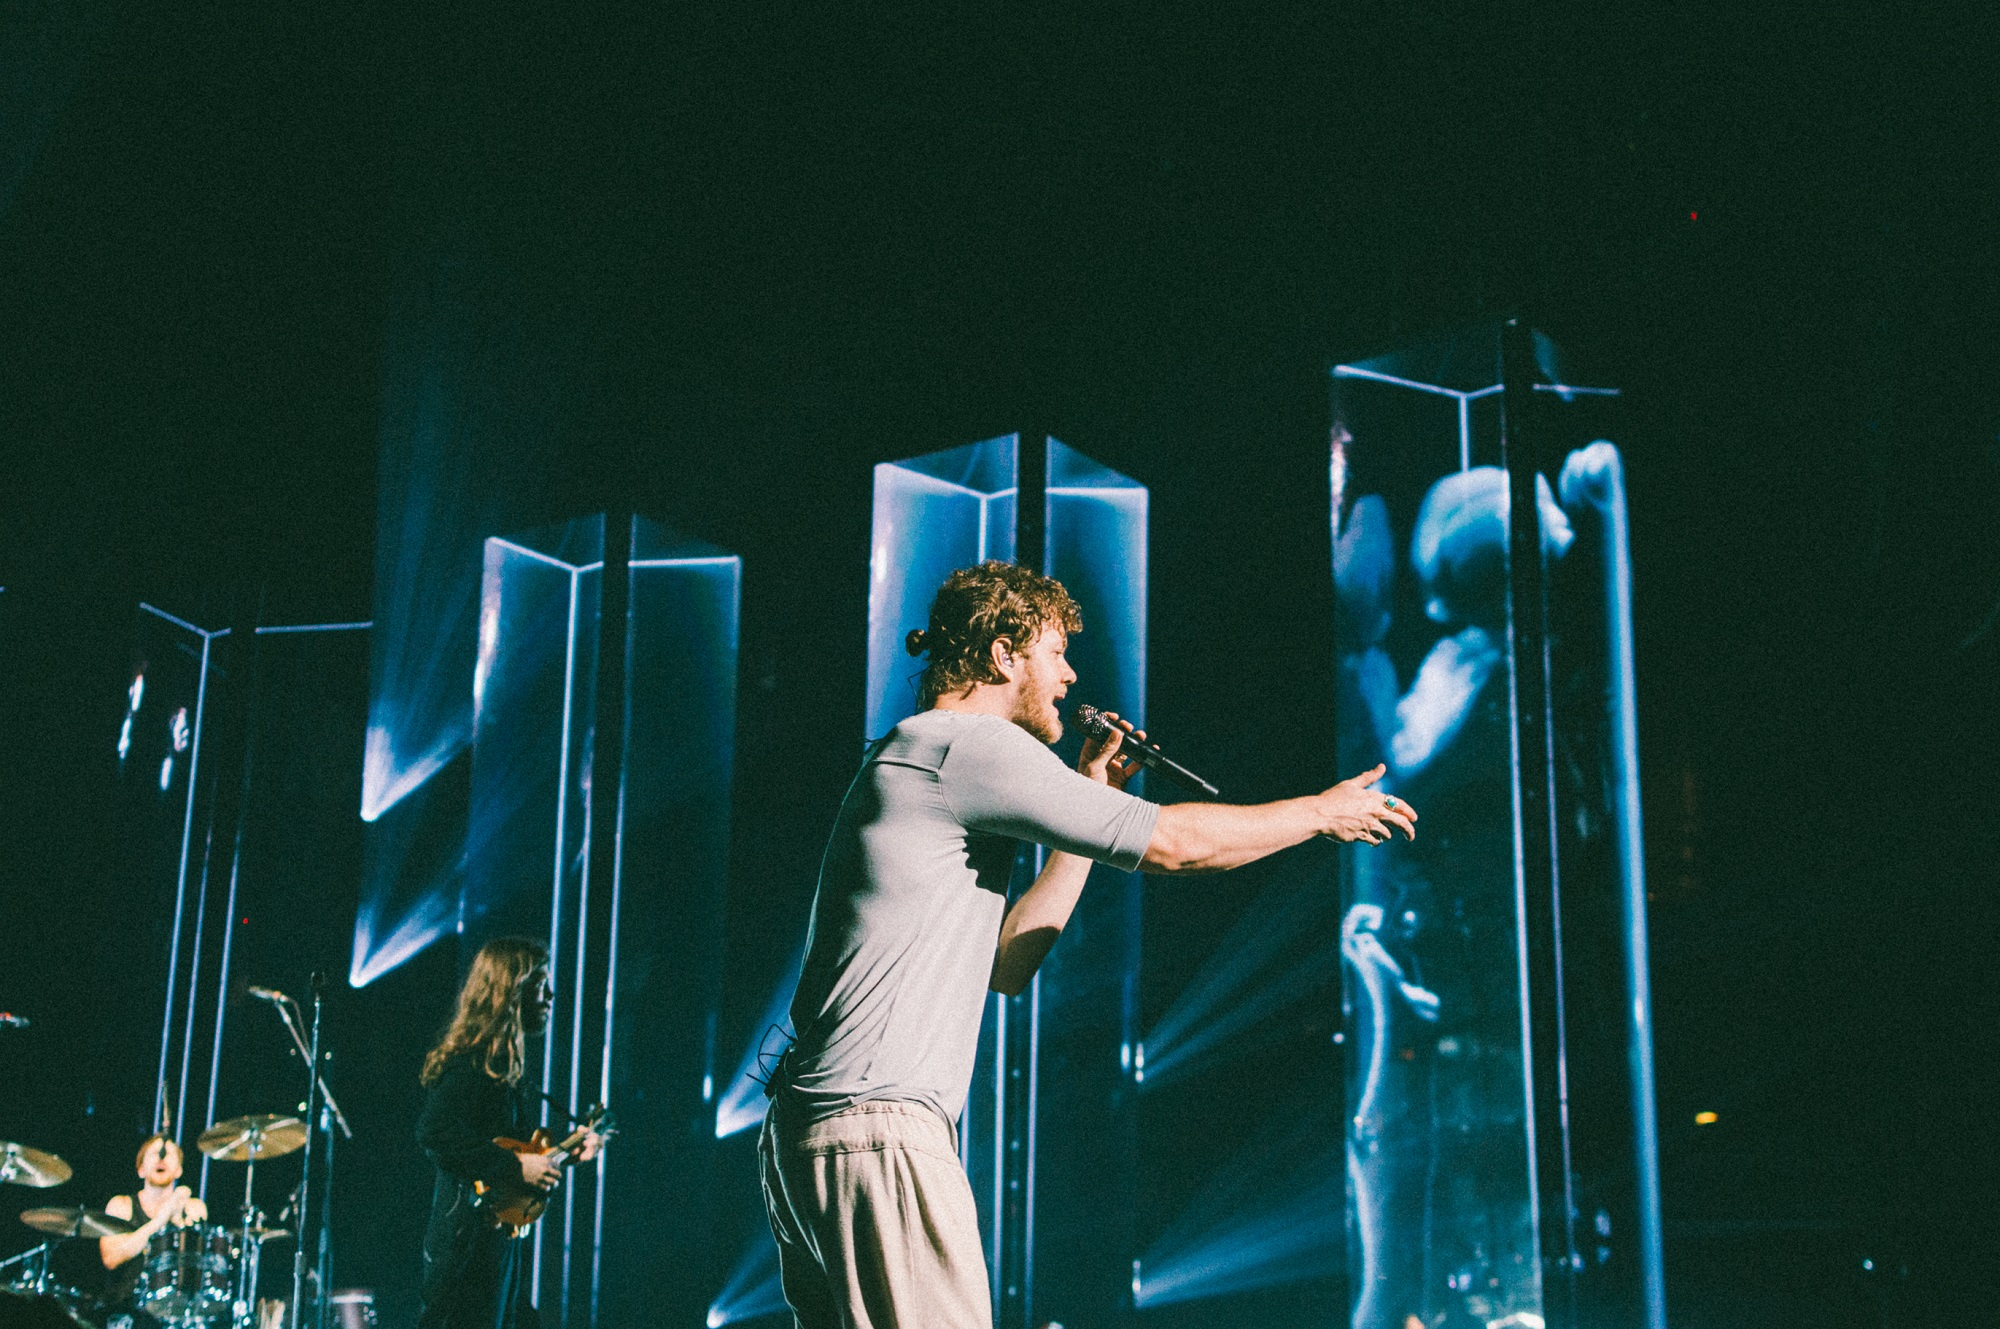 """Dan Reynolds of Imagine Dragons performs at Bridgestone Arena in Nashville, Tenn. on Wednesday, June 8, 2015, The performance was part of the band's """"Smoke + Mirrors"""" tour. (MTSU Sidelines / Andre Rowlett)"""